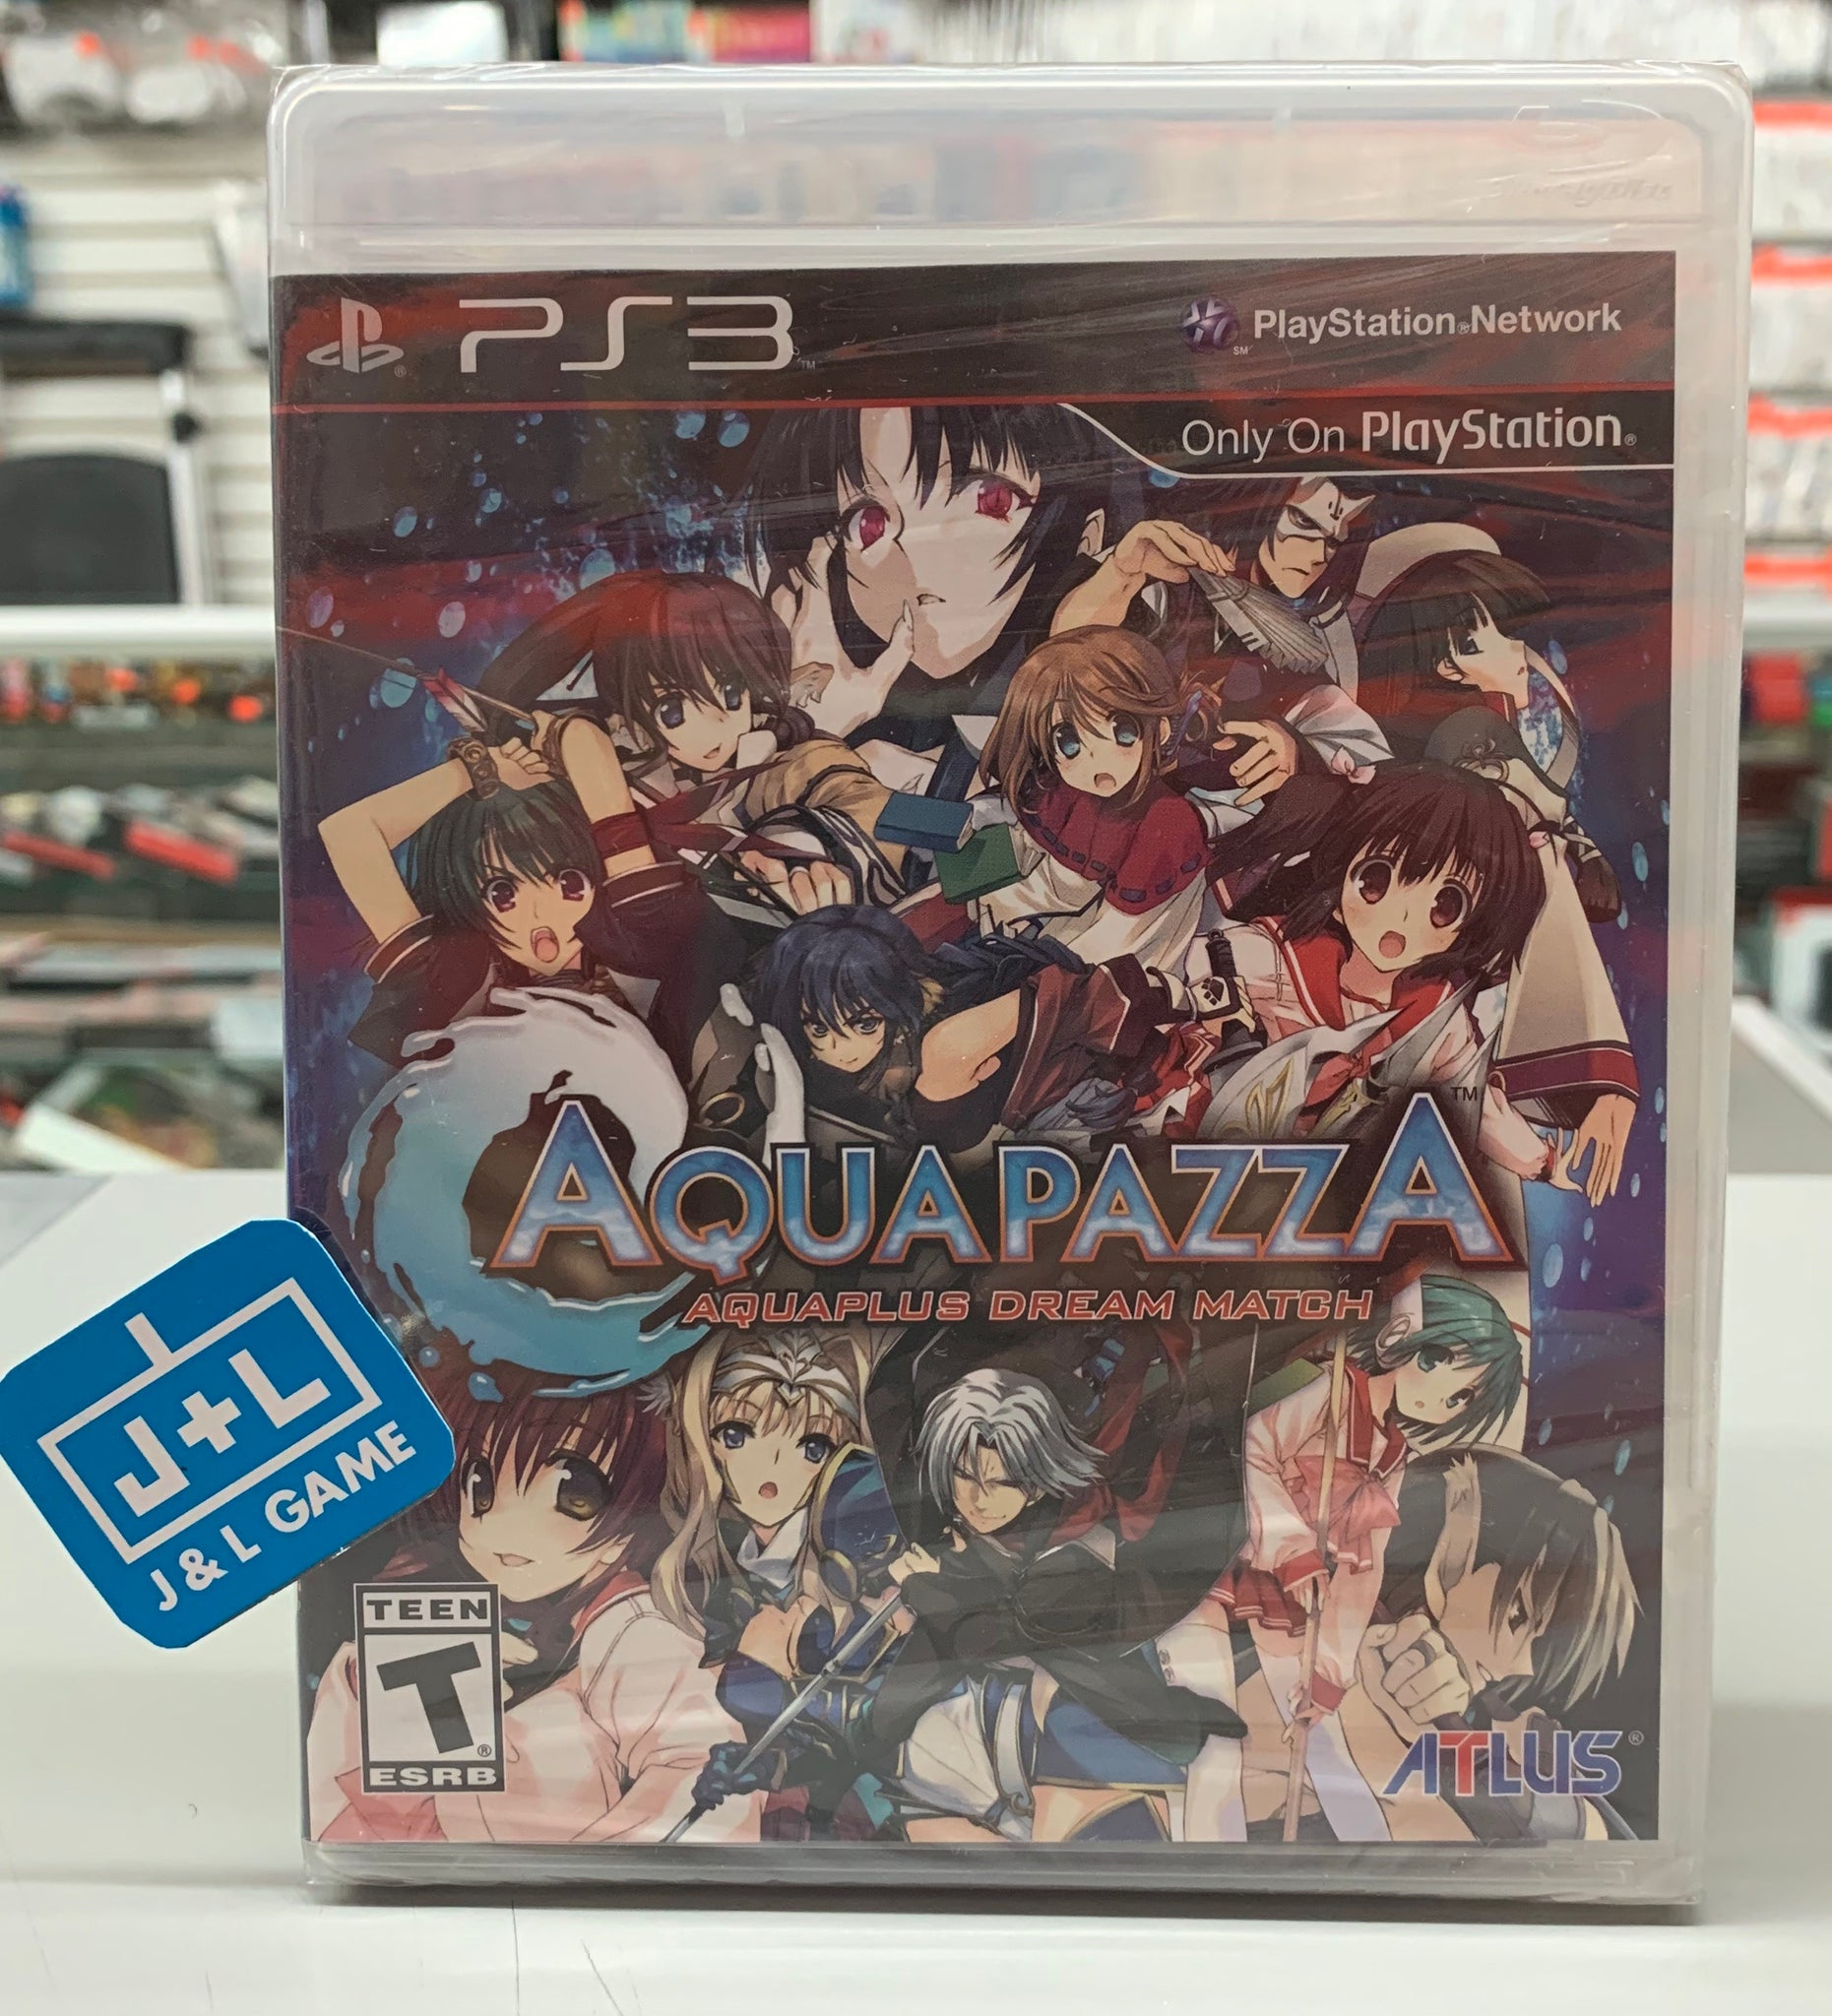 AquaPazza: AquaPlus Dream Match - PlayStation 3